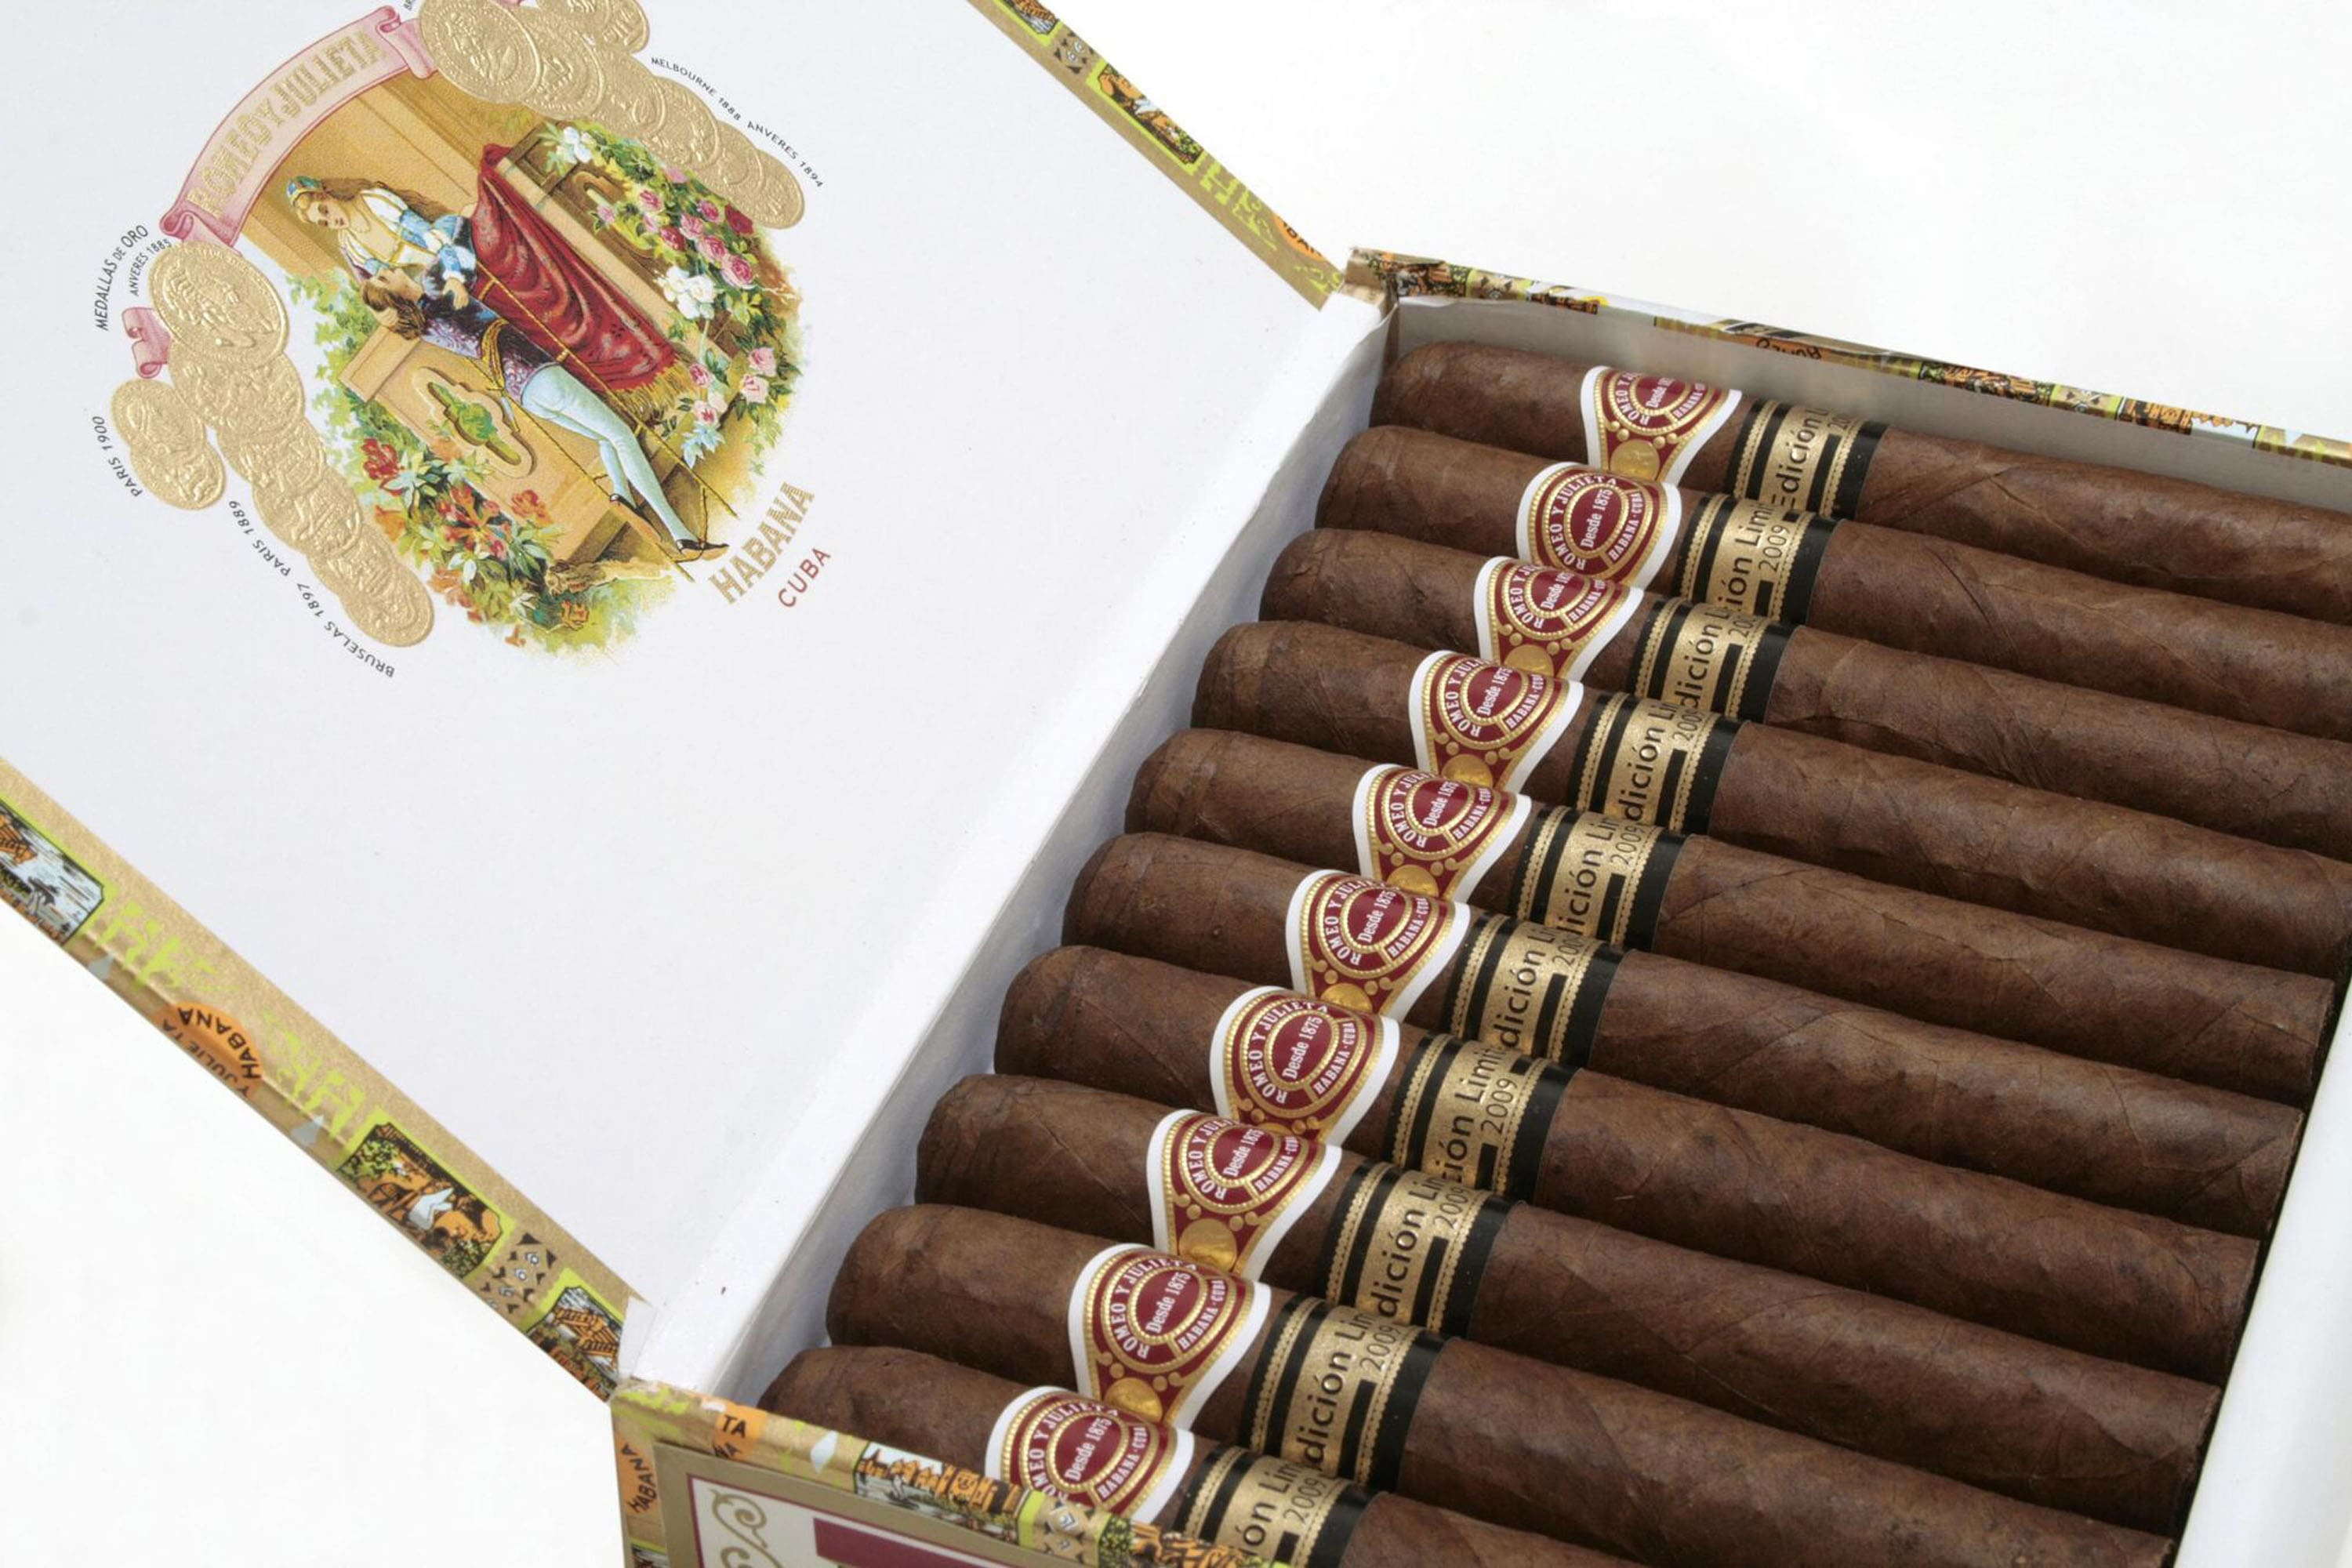 romeo y julieta duke 2009 Classic Shop